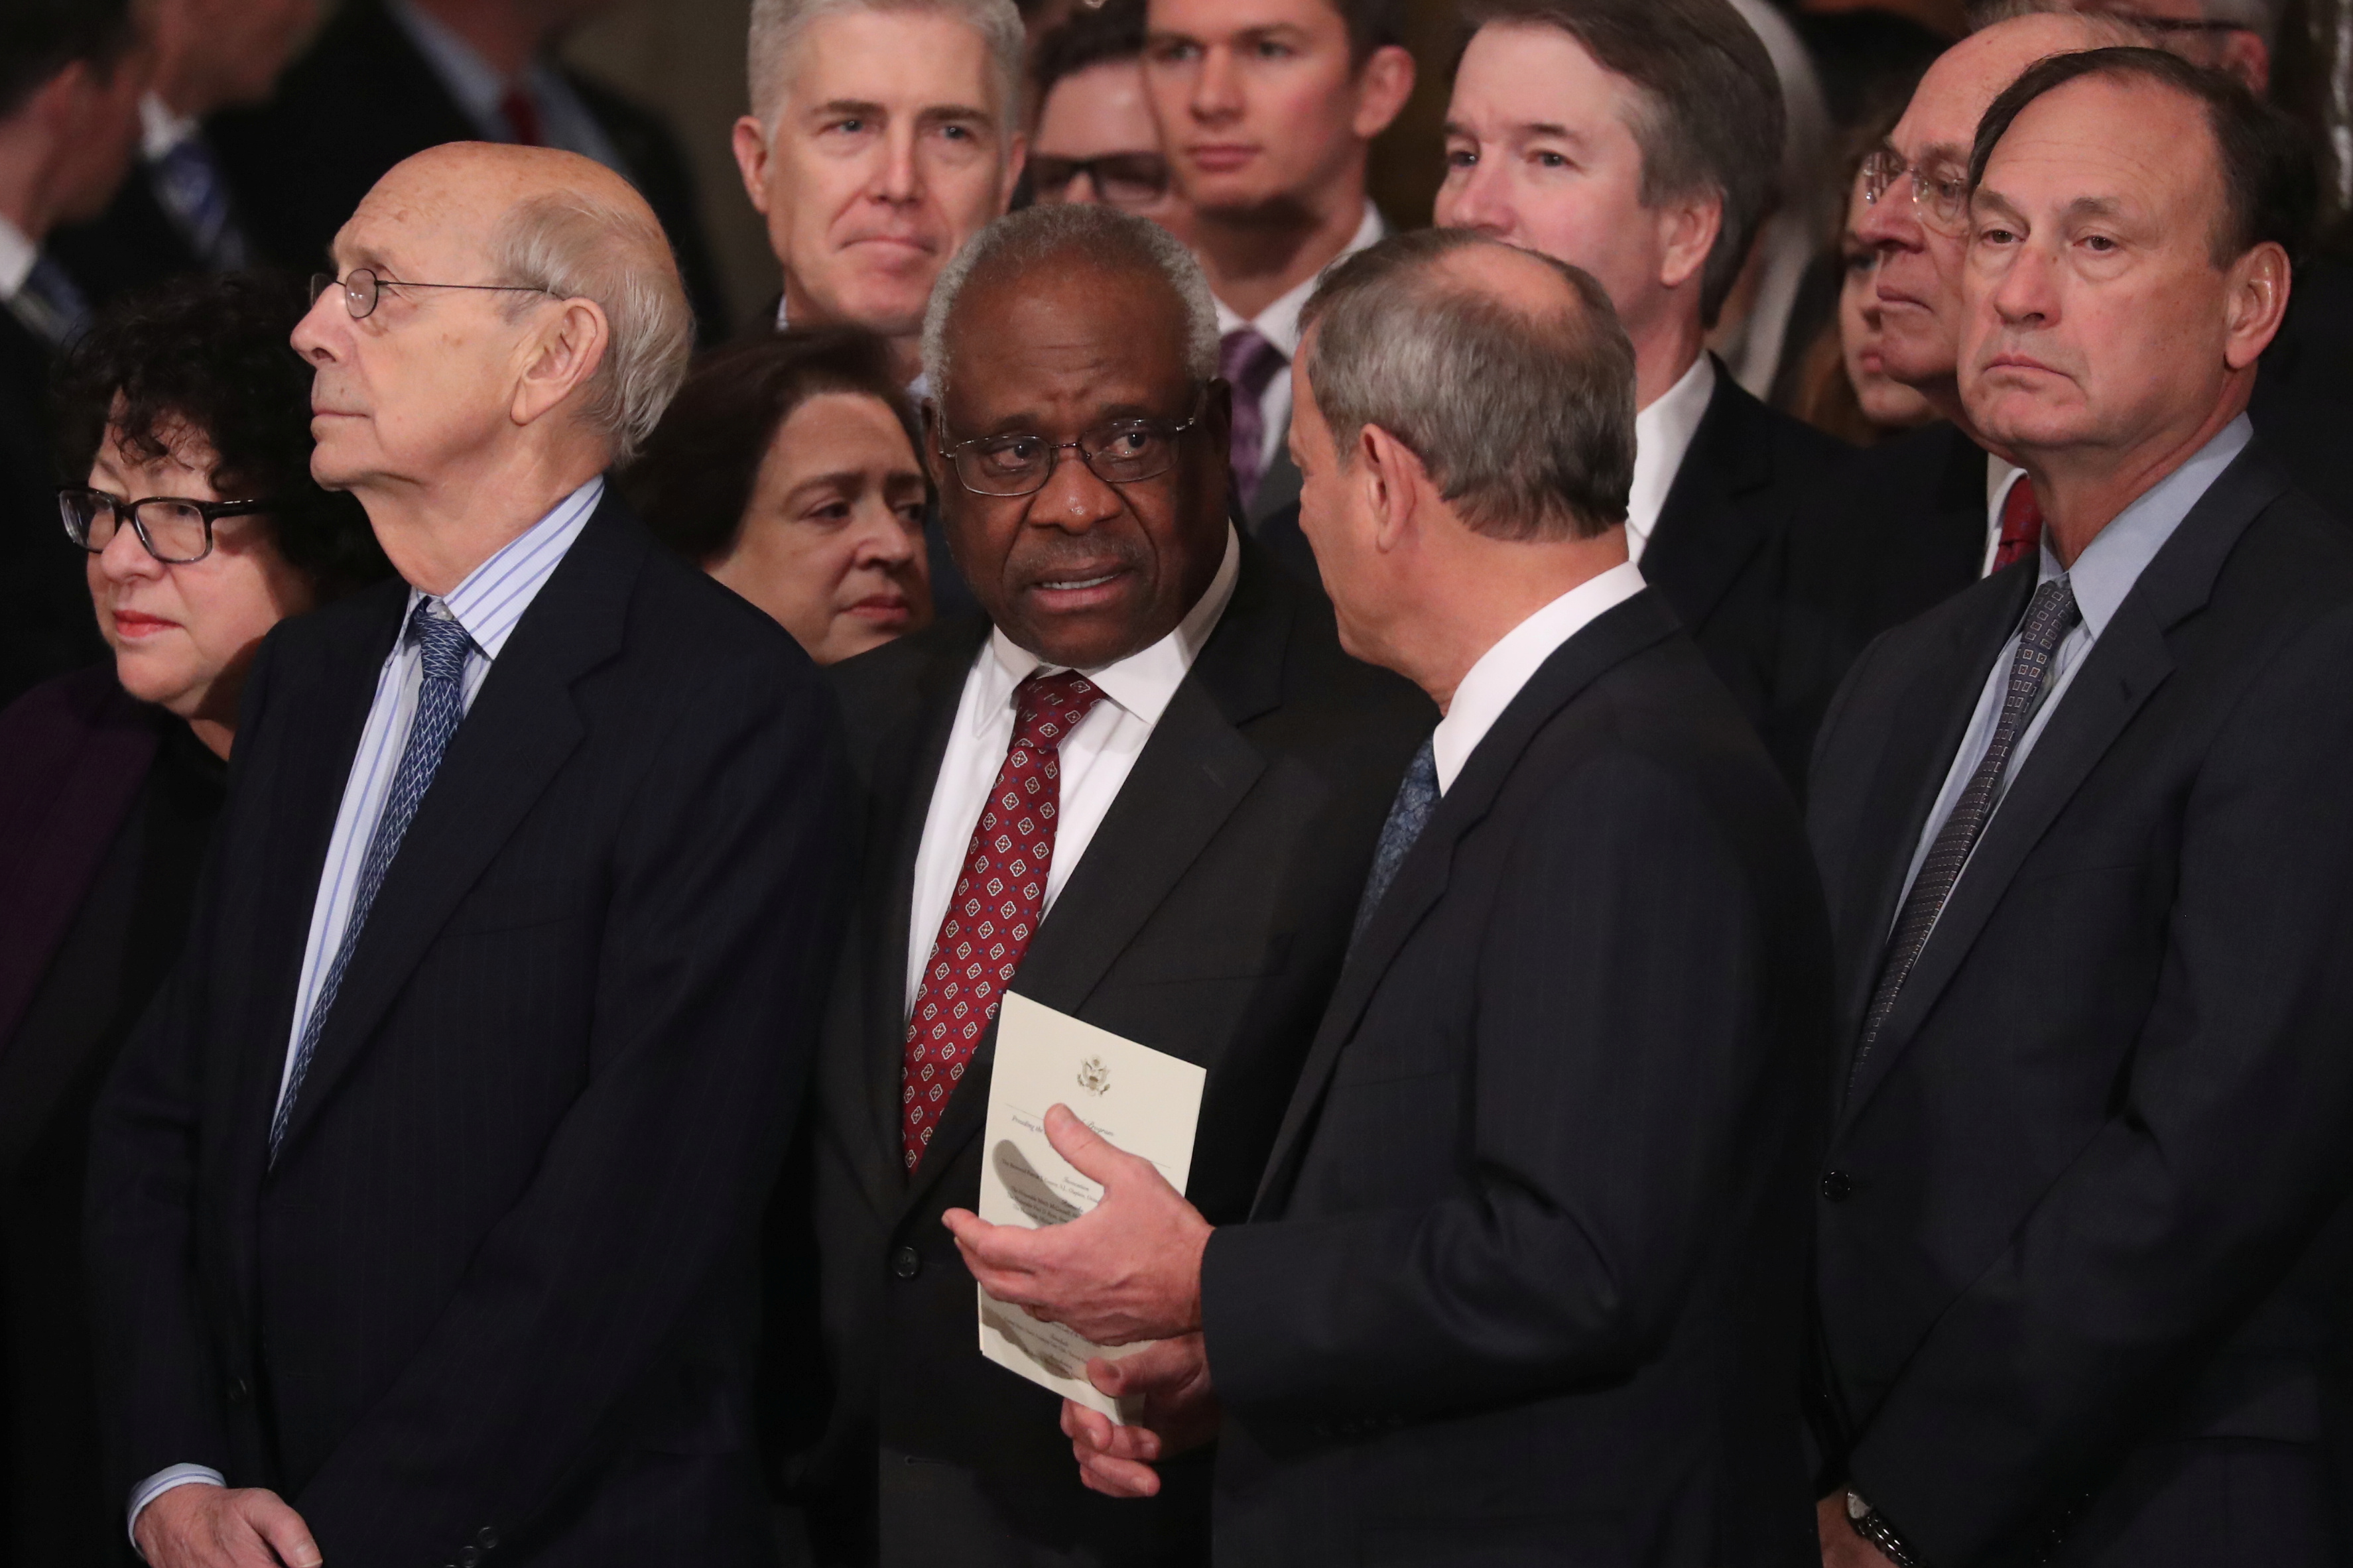 Justices of the U.S. Supreme Court including (L-R) Associate Justices Sonia Sotomayor, Stephen Breyer, Elena Kagan, Neil Gorsuch, Clarence Thomas, Chief Justice John Roberts, Associate Justice Brett Kavanaugh, former Associate Justice Anthony Kennedy and Associate Justice Samuel Alito await the arrival of the casket of former U.S. President George H.W. Bush inside the U.S. Capitol Rotunda, where it will lie in state in Washington, U.S., December 3, 2018. REUTERS/Jonathan Ernst/Pool